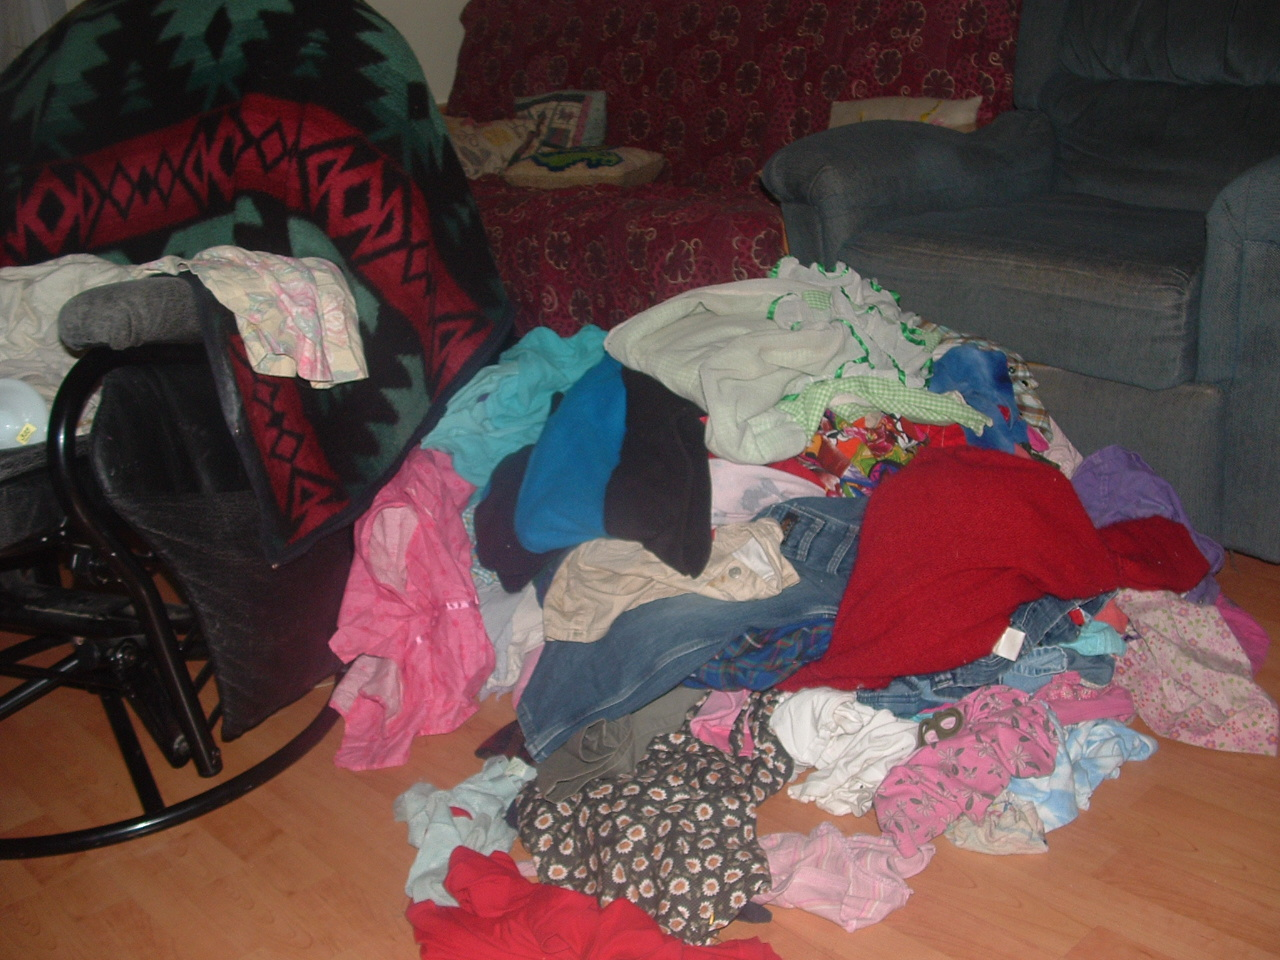 Torah home management – decluttering